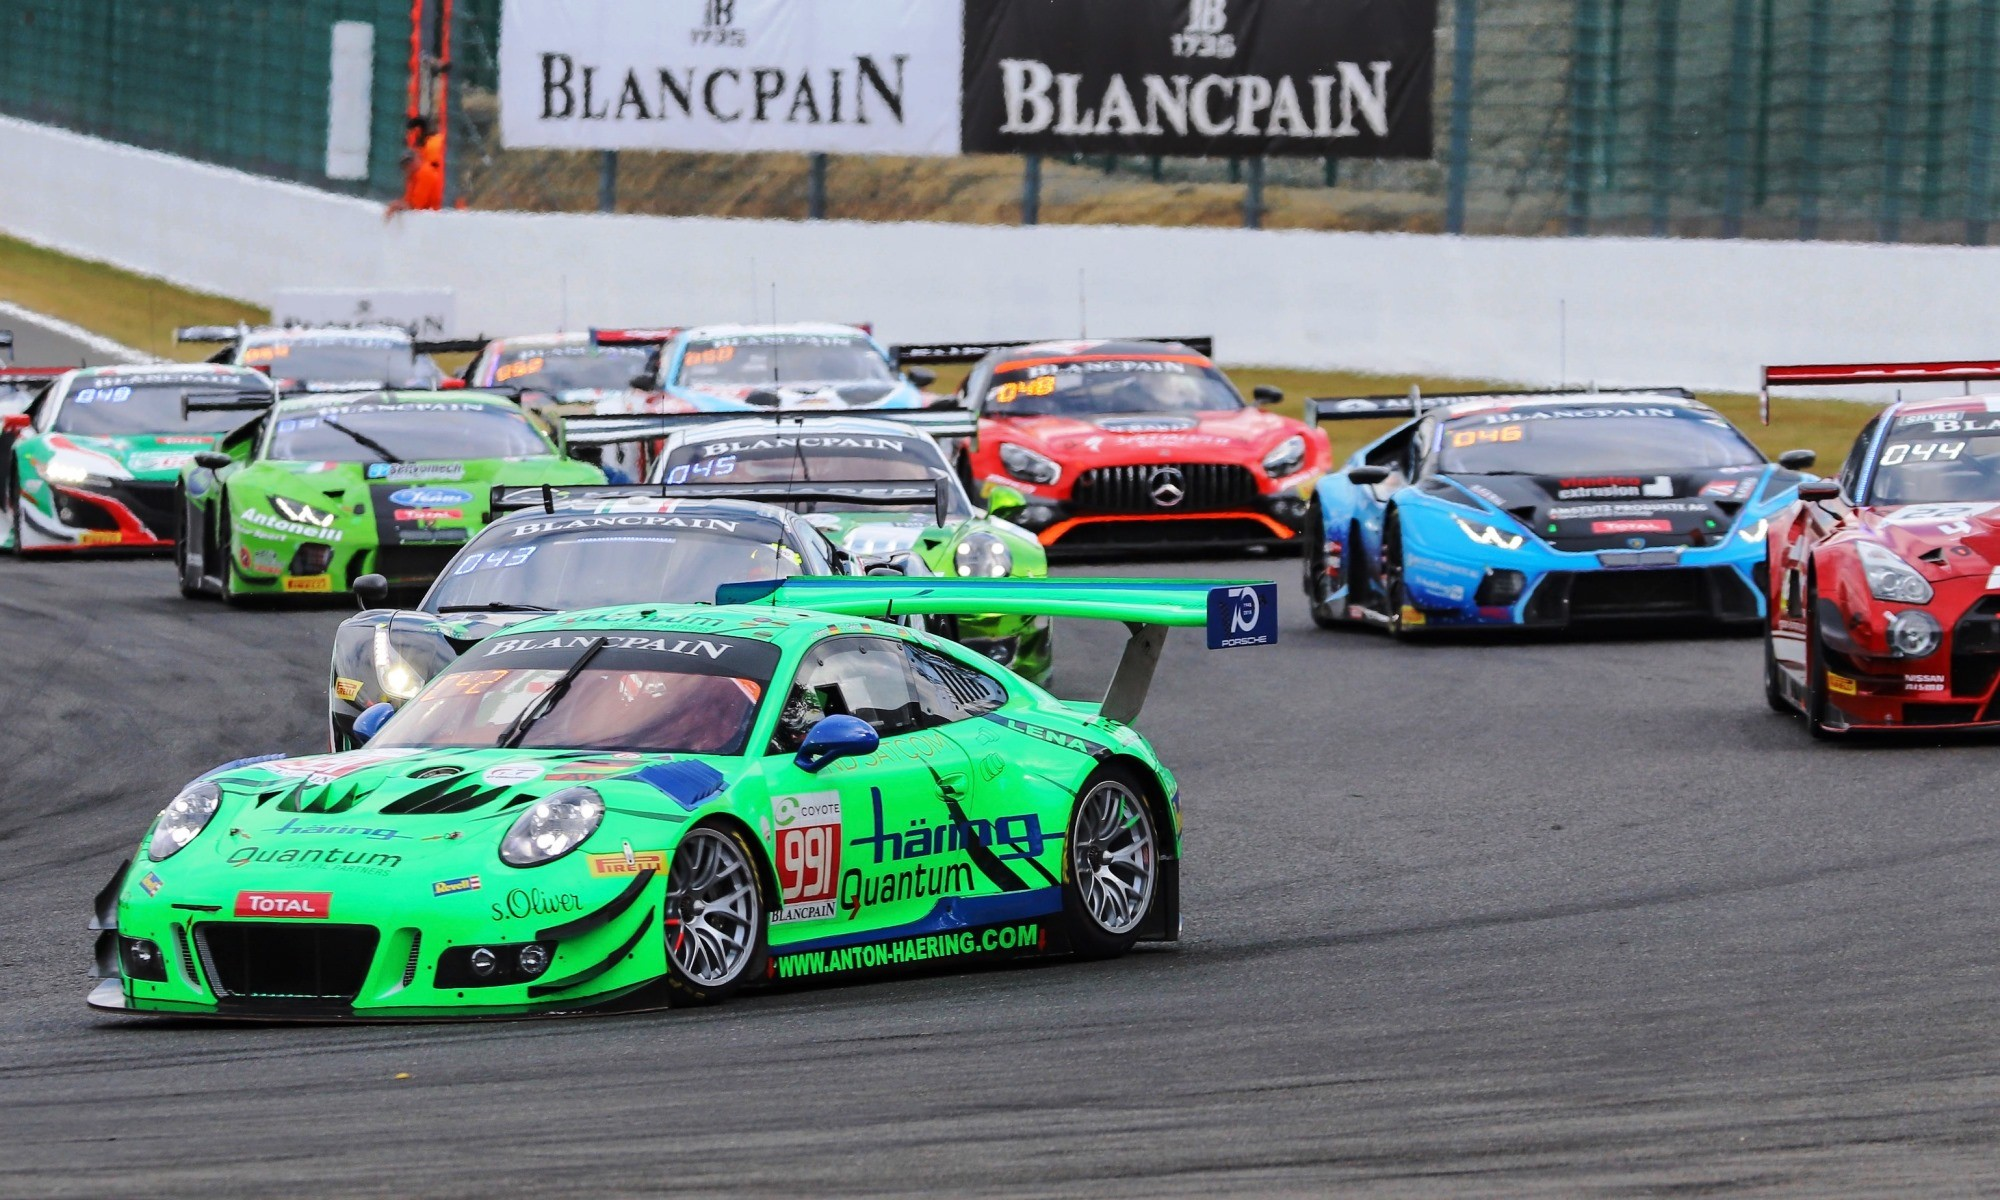 There is close racing action throughout the GT field.